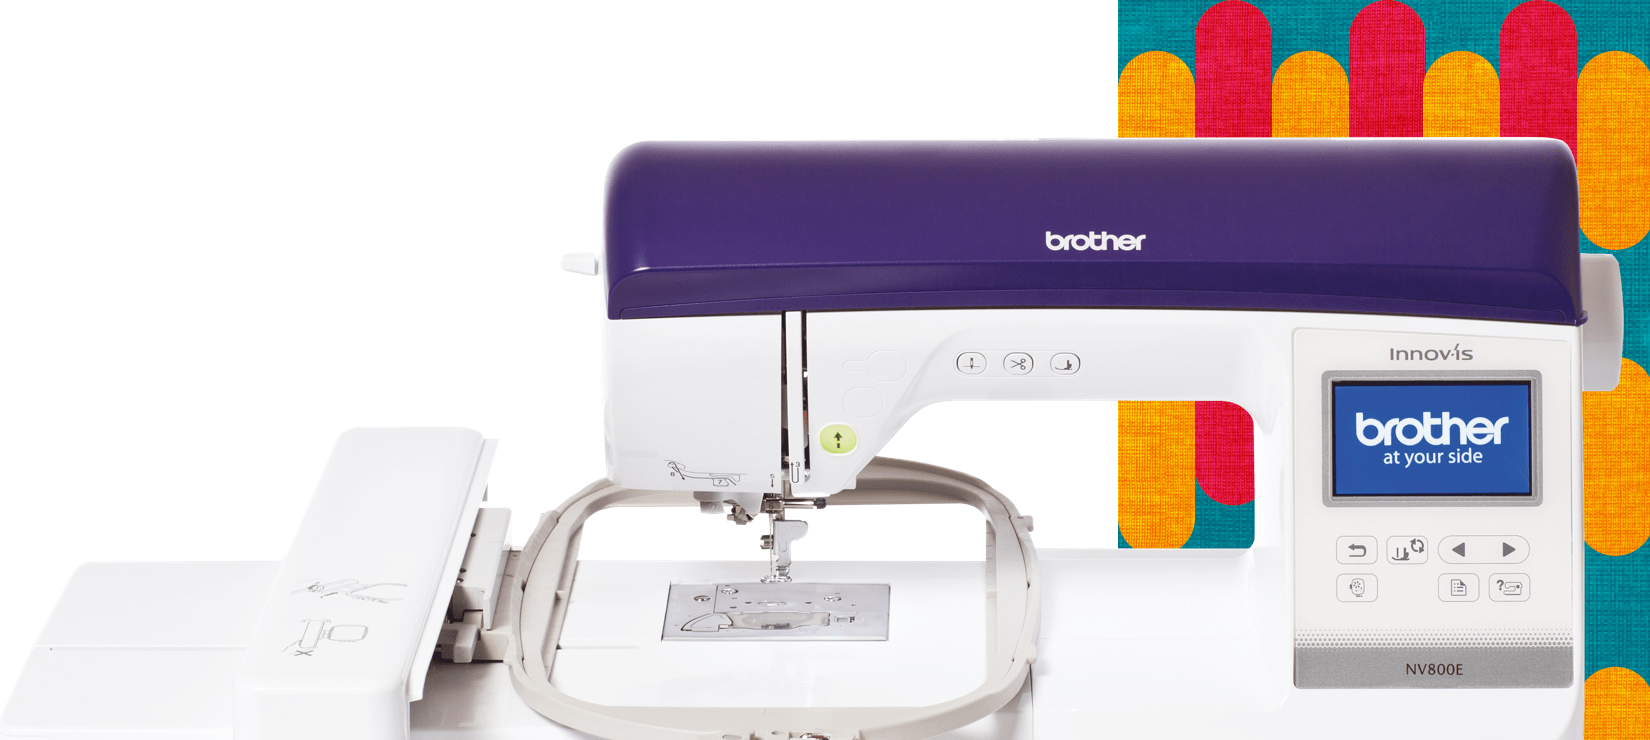 Innov-is 800E embroidery machine on a muilticoloured background